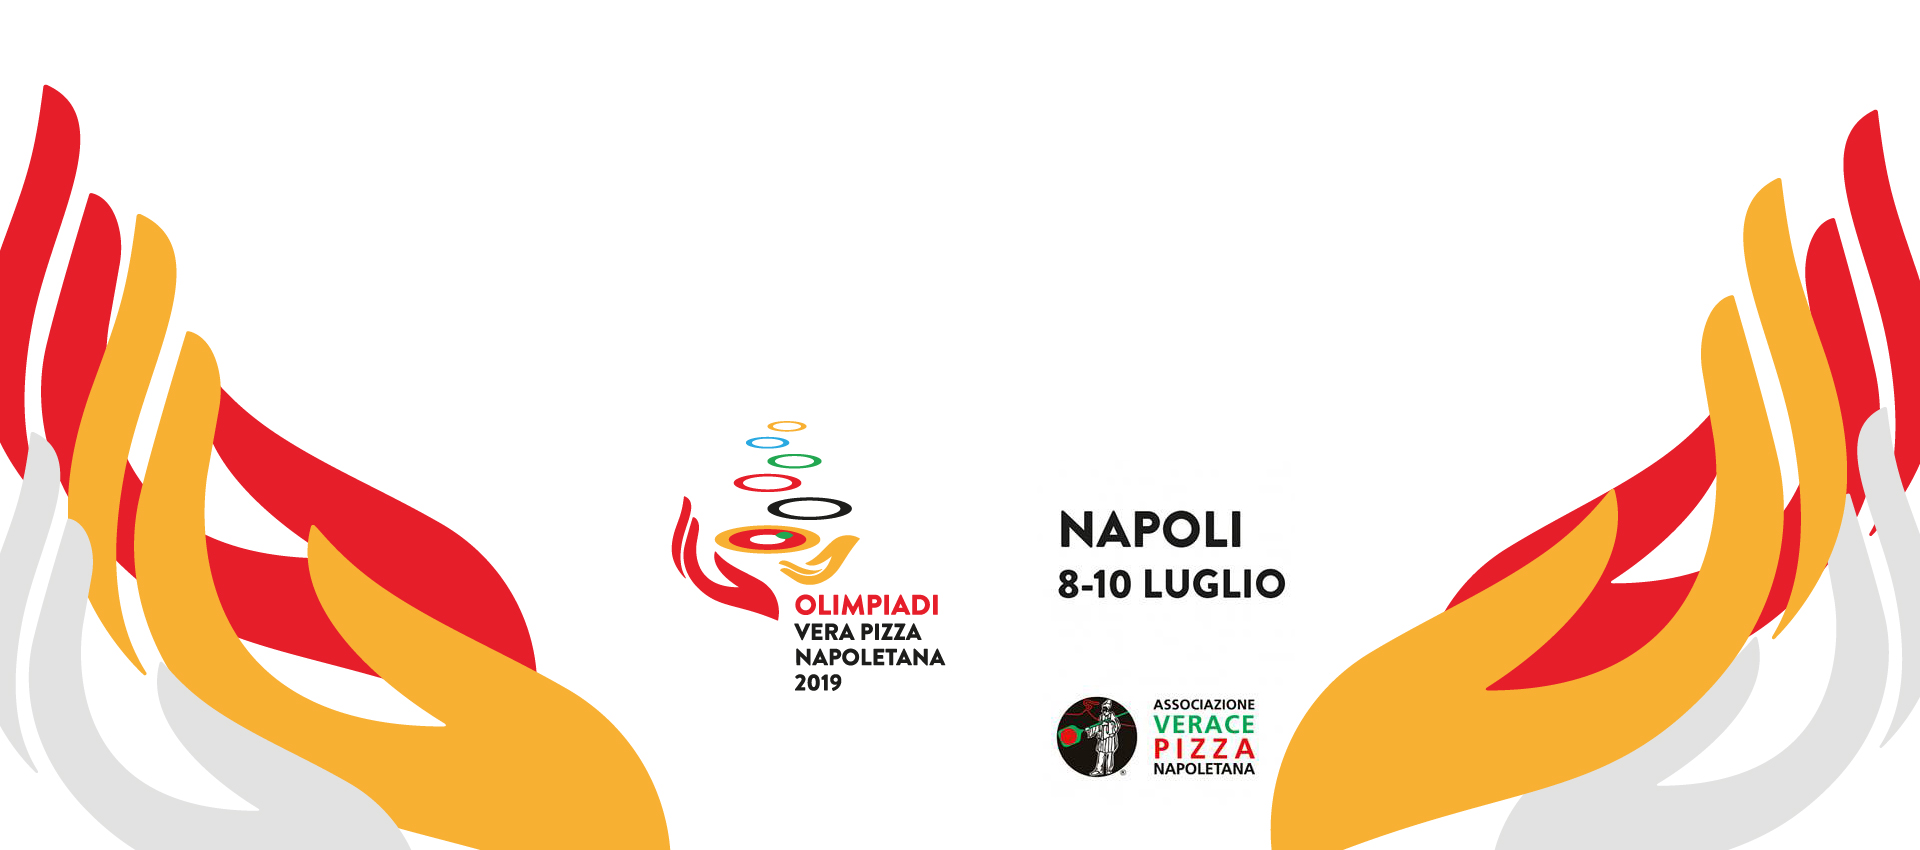 Vera Pizza Napoletana Olympic Games